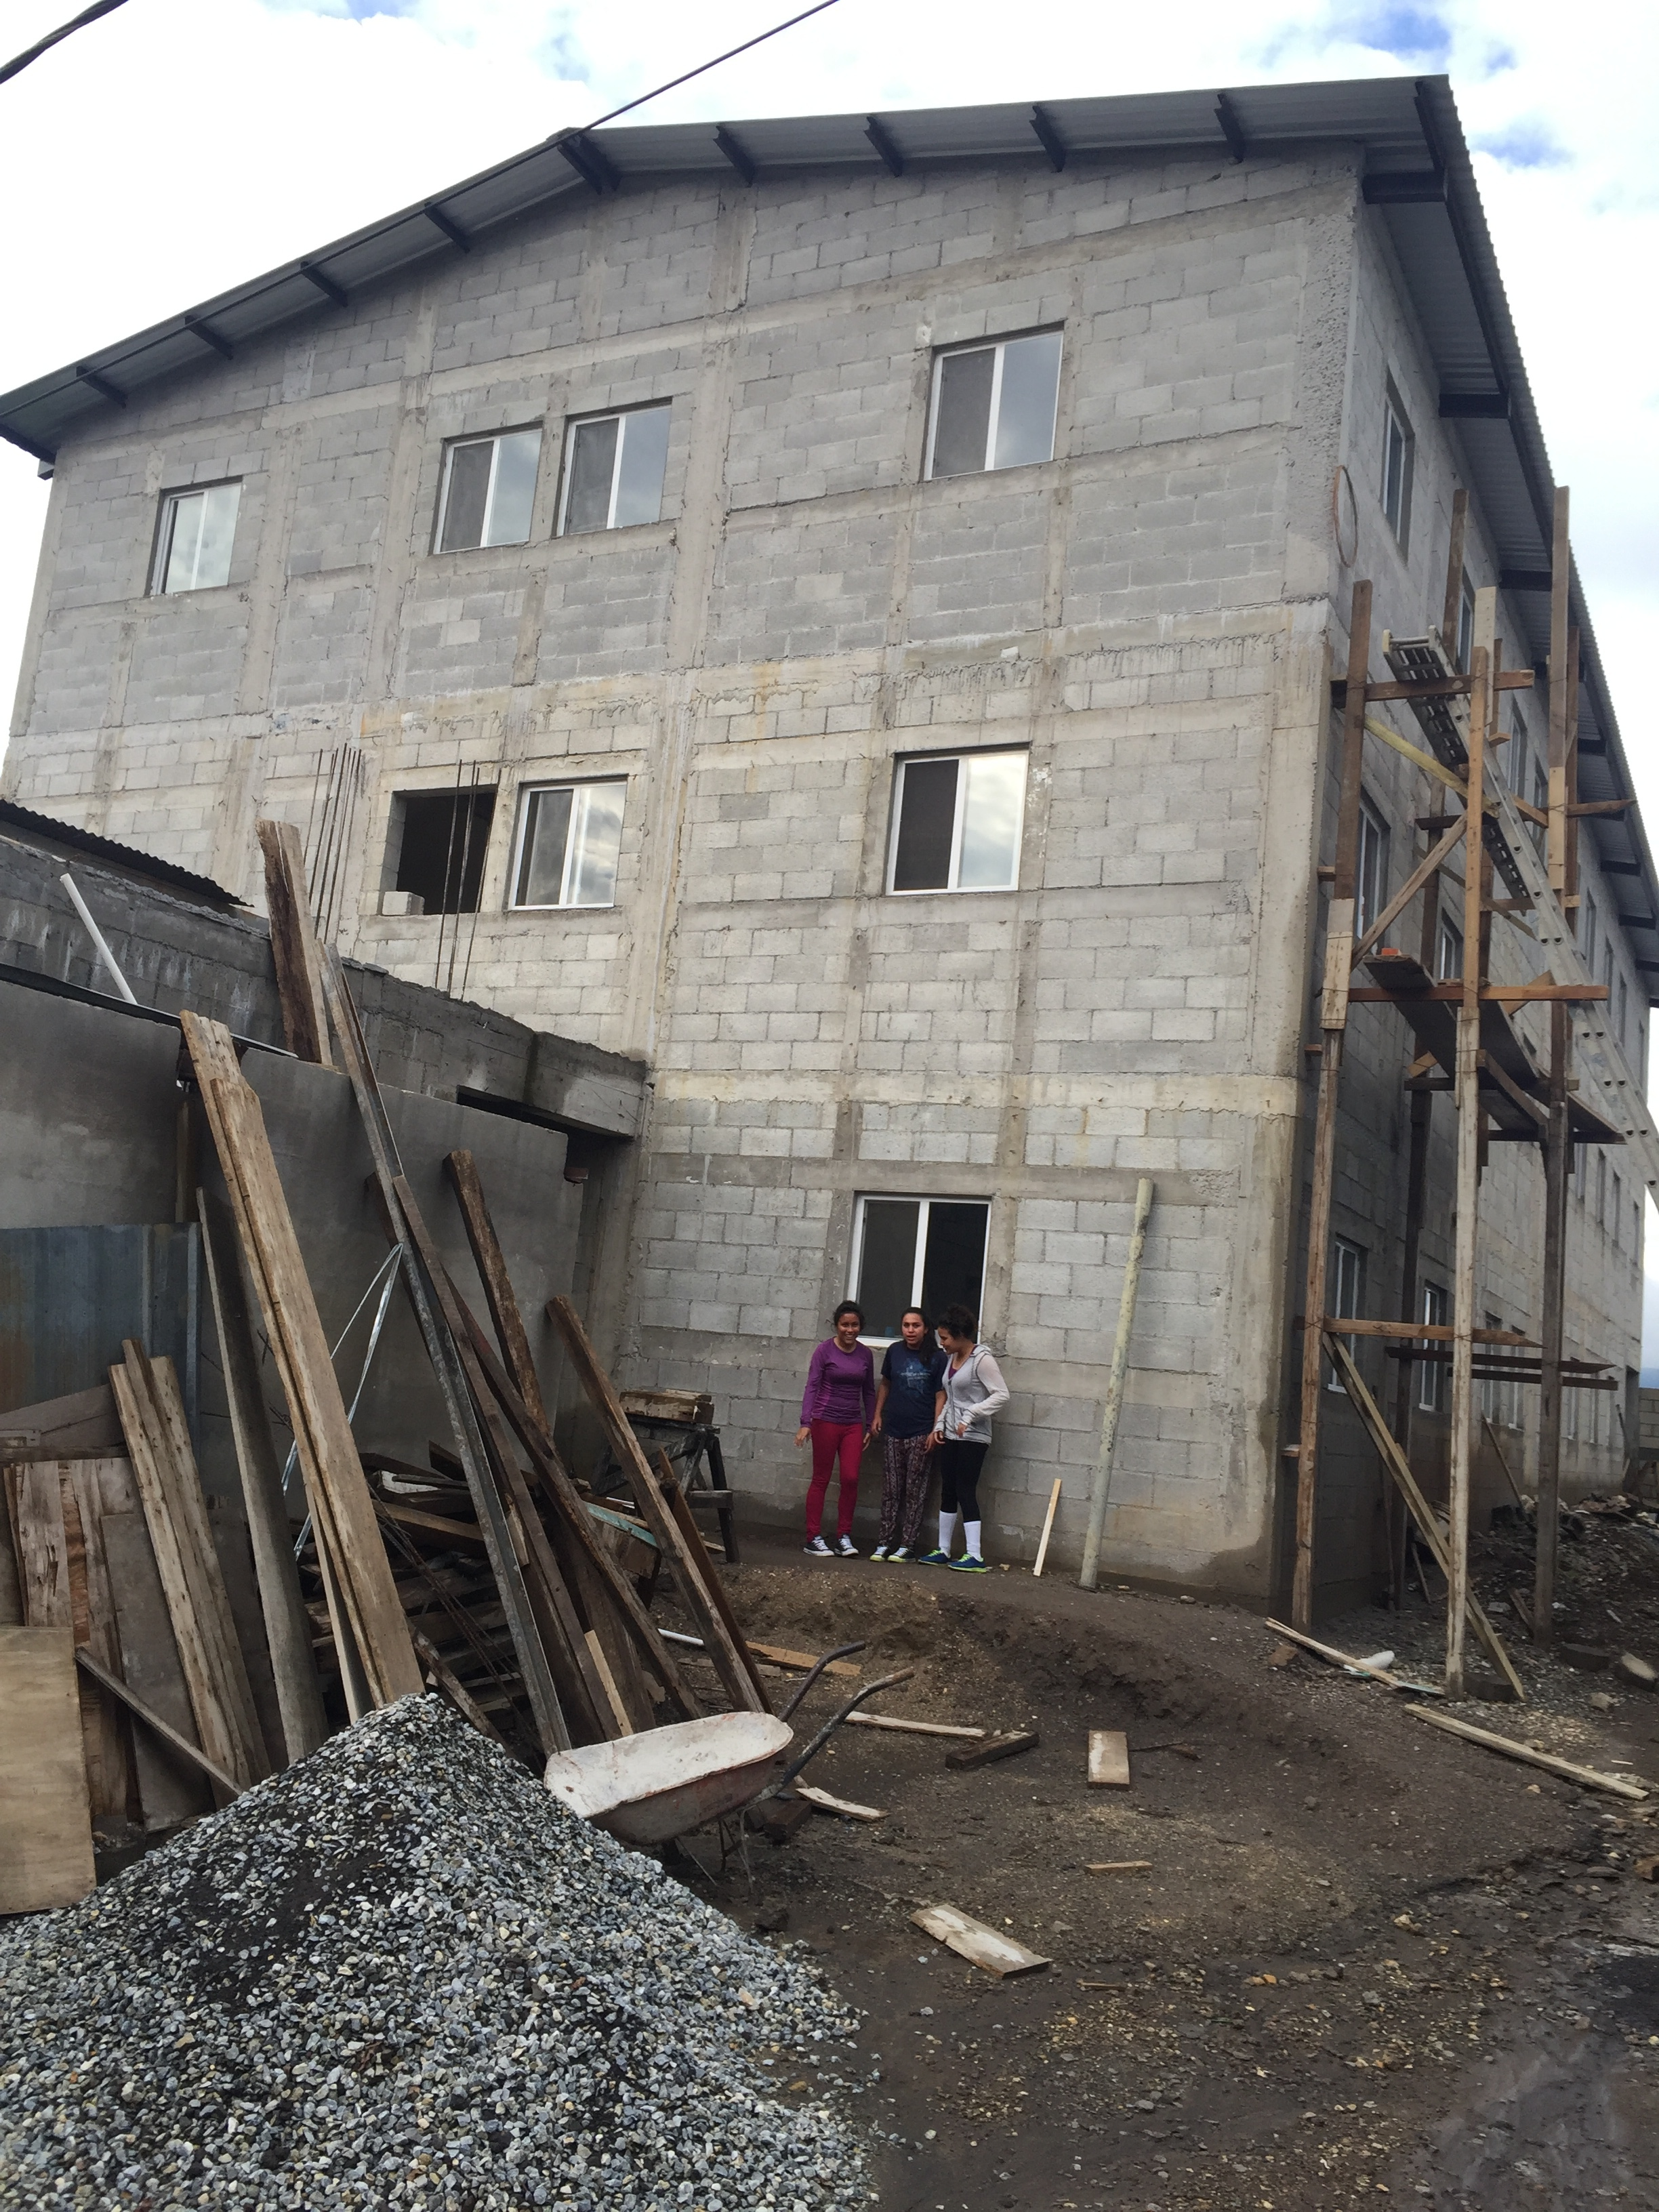 We are preparing the building for painting. It is huge.